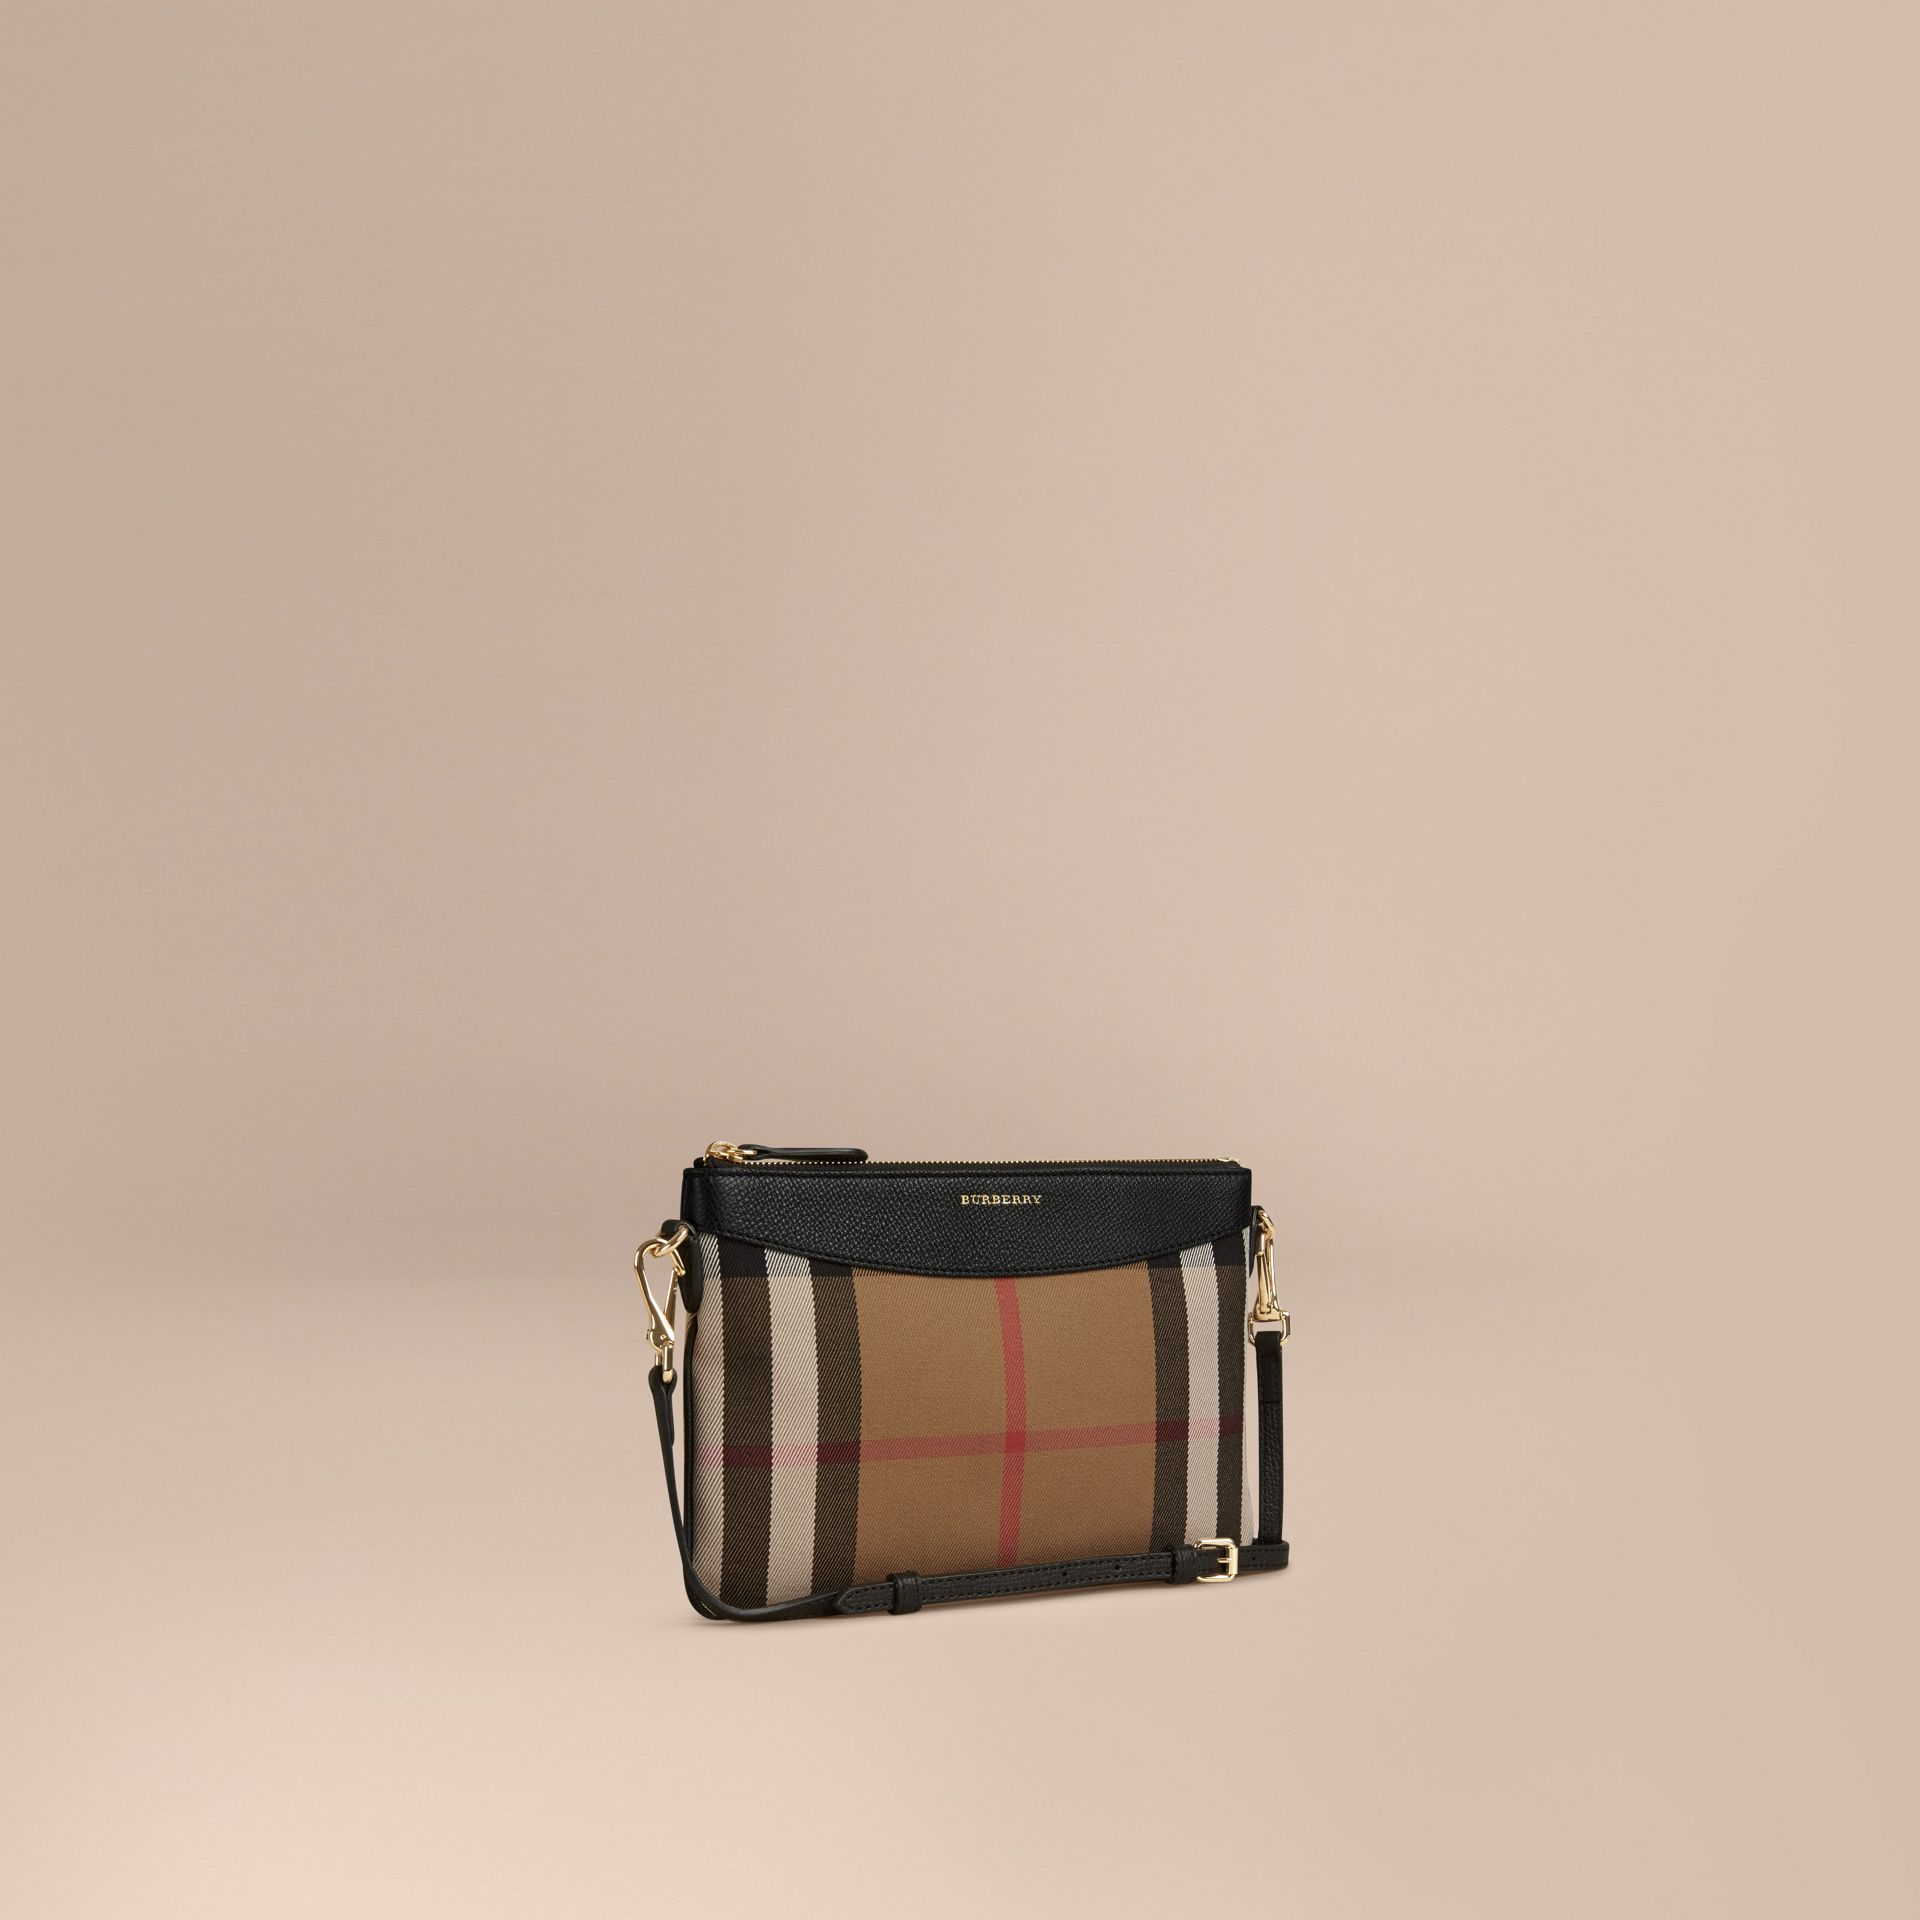 House Check and Leather Clutch Bag Black - gallery image 1